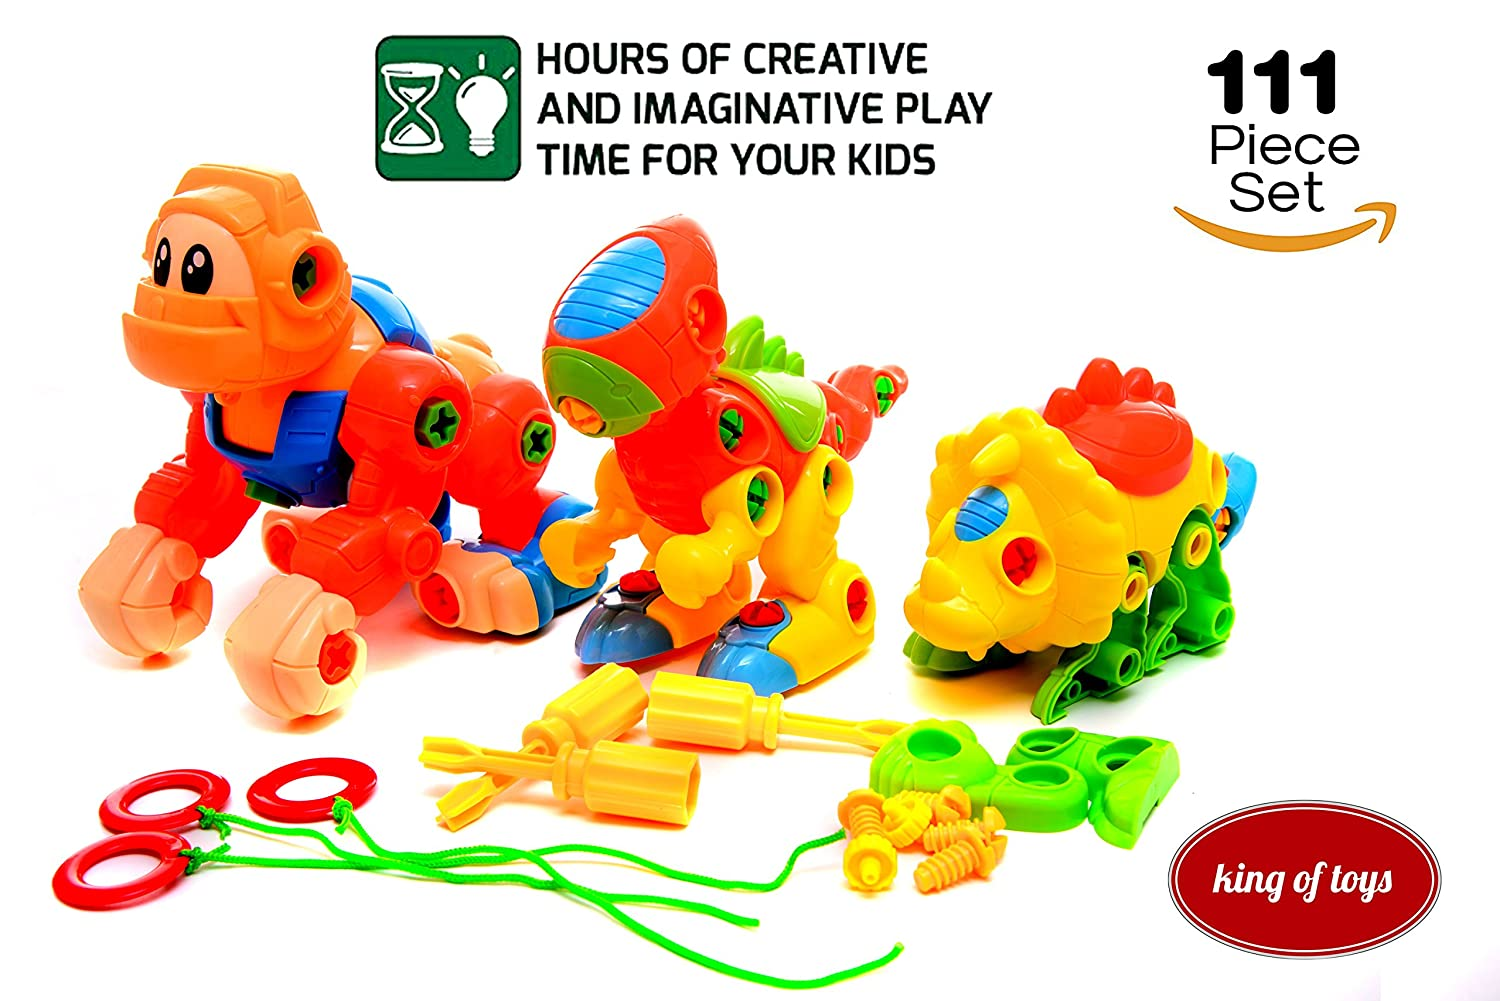 Dinosaur Take Apart STEM Learning Toys with Tools Pack of 2 Dinosaurs And 1 King Kong Construction Engineering 111 Piece Toy Play Set Hours of FunToy for Boys Girls Age 3 4 5 Year Old